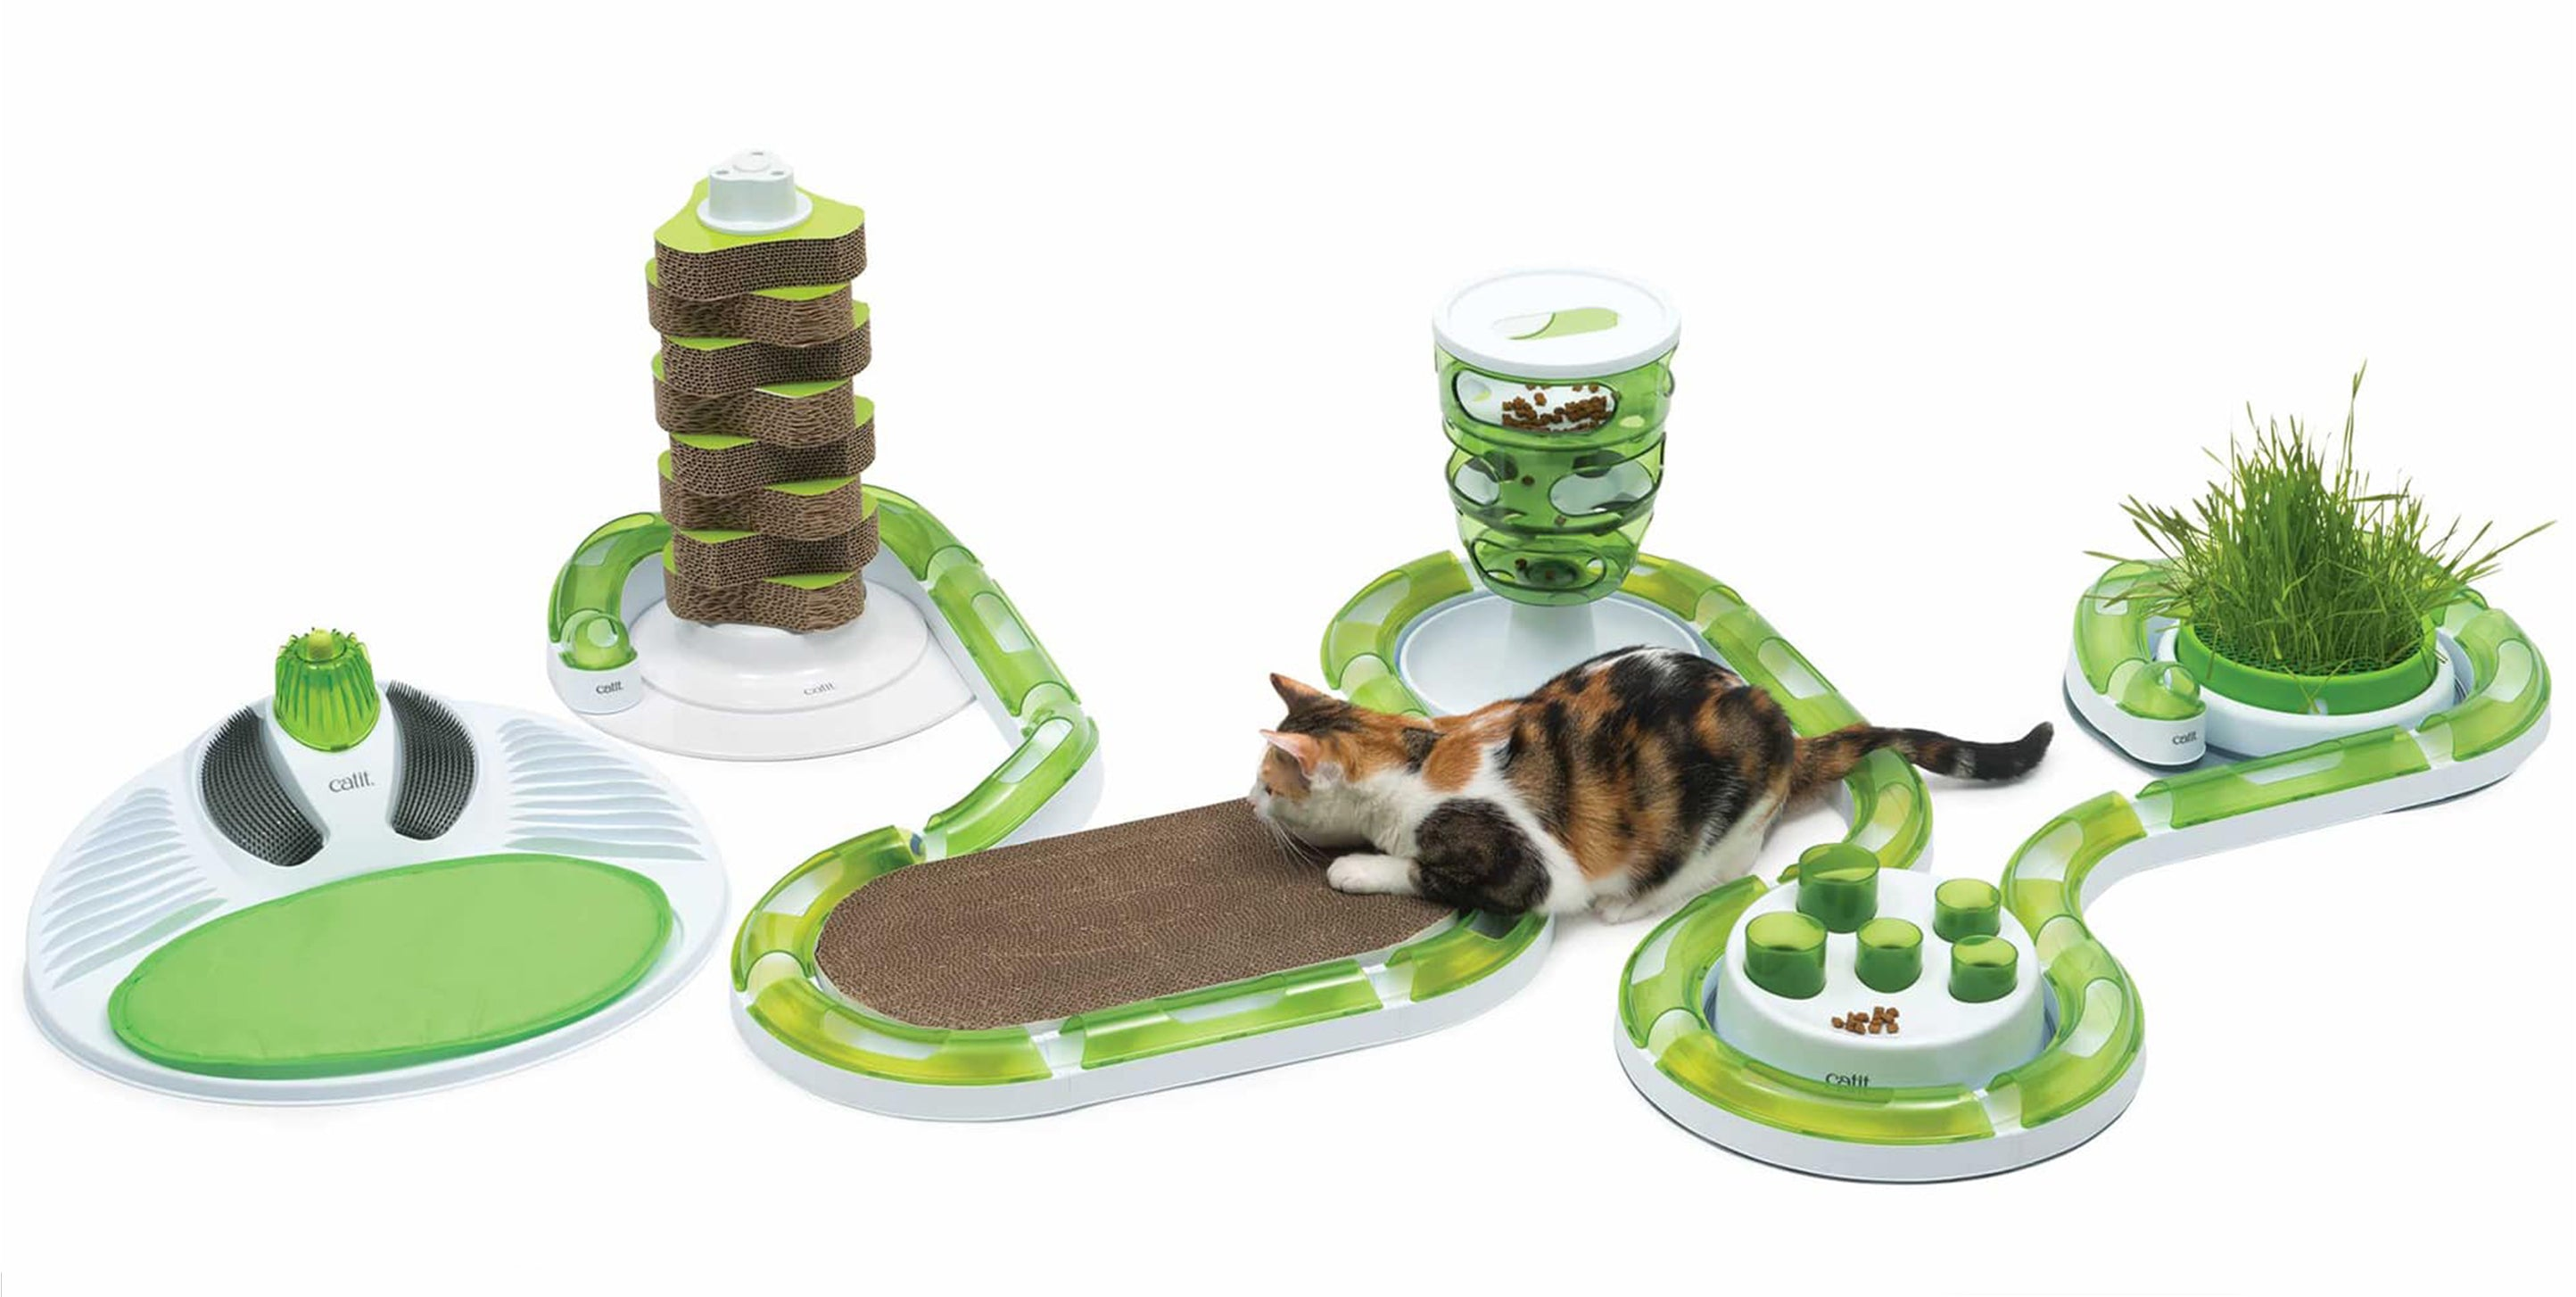 catit senses 2.0 interactive toys for cats.